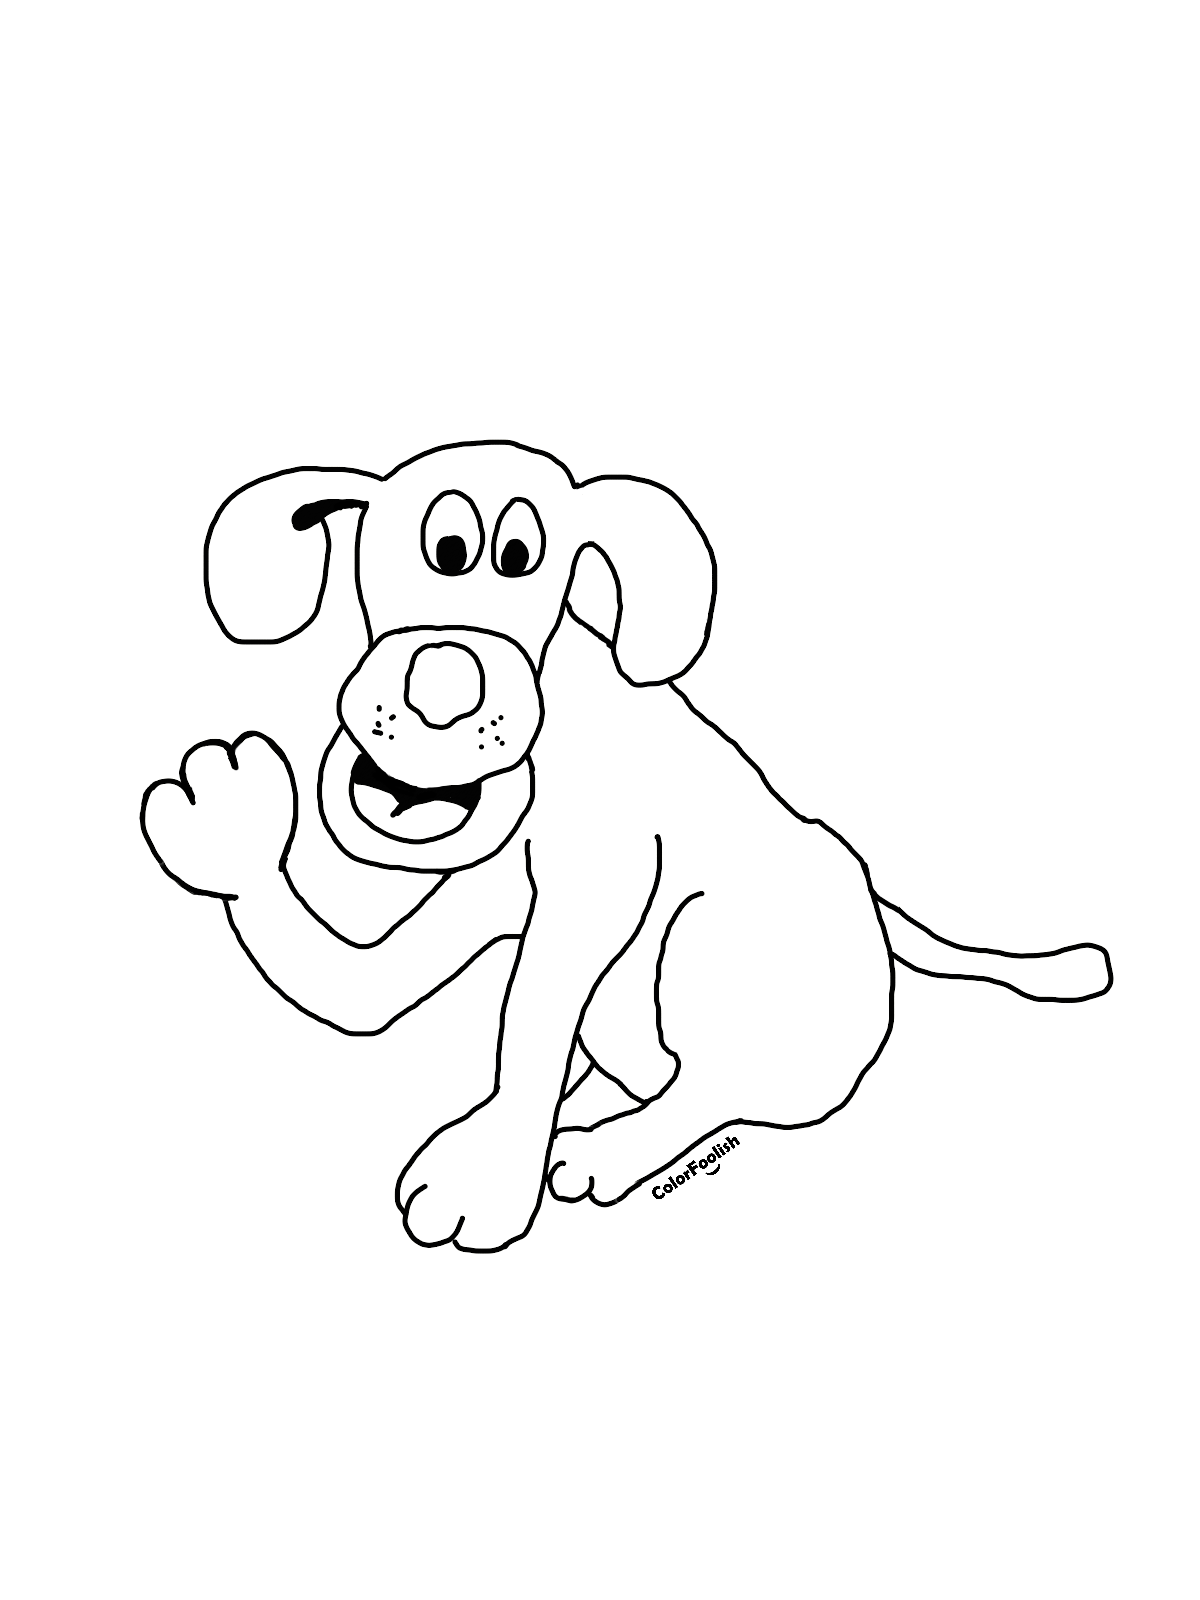 Coloring page of a smiling and waving dog